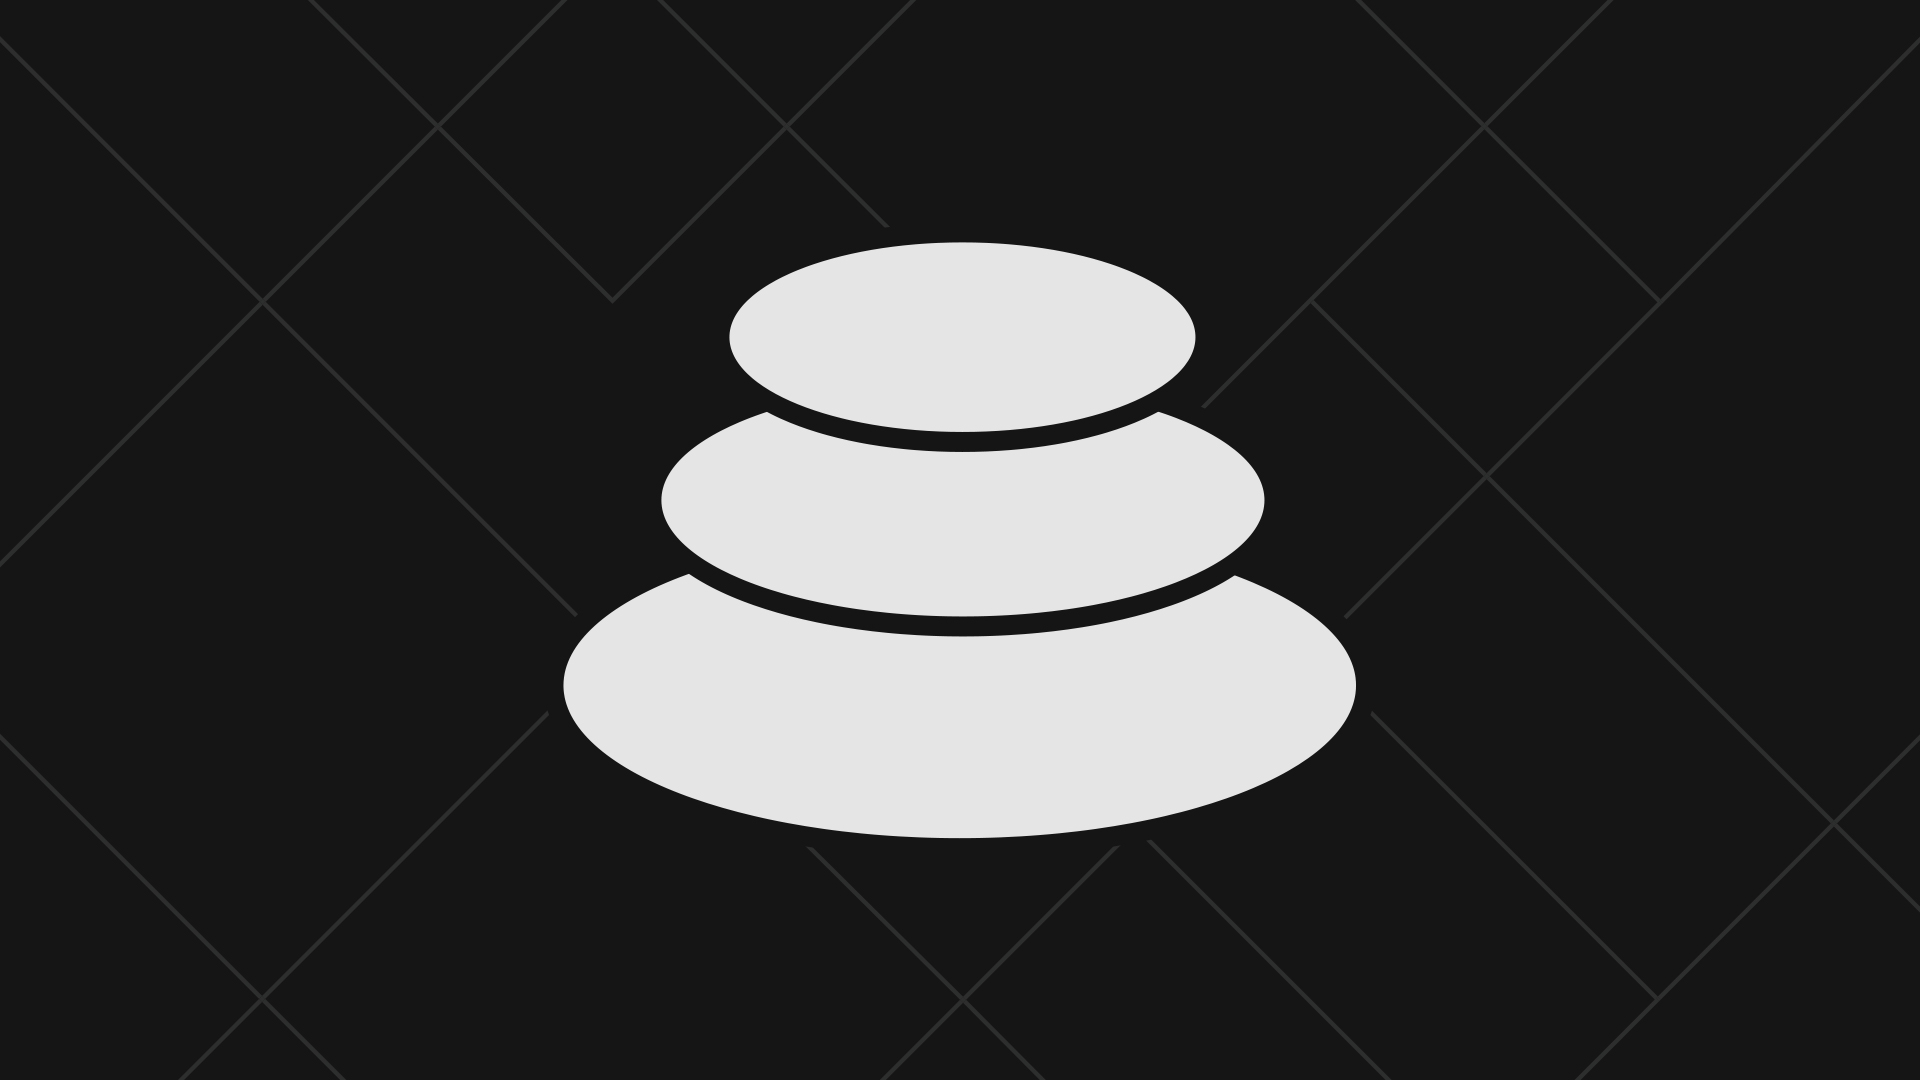 DeFi protocol Balancer will find a second home on the NEAR Protocol